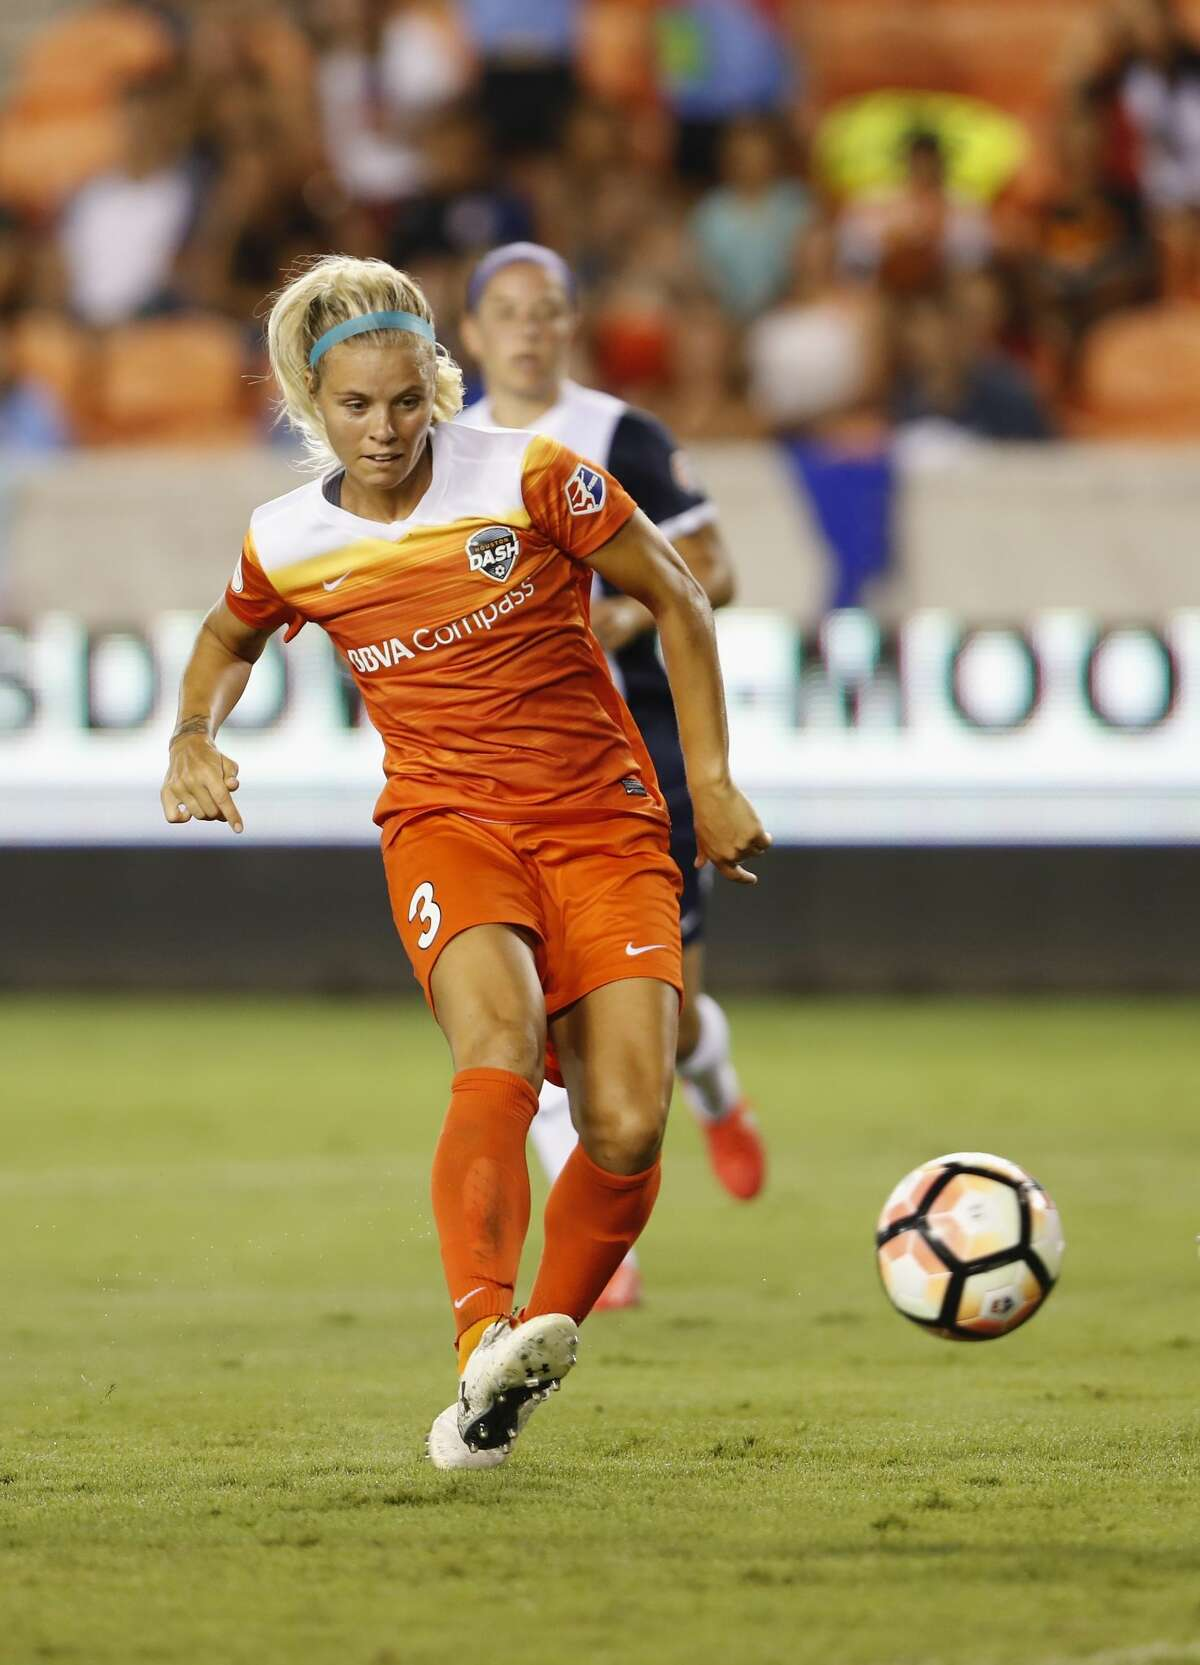 Houston Dash forward Rachel Daly (3) shoots the ball in the second half during the NWSL game between the Washington Spirit and Houston Dash on Saturday July 15, 2017. The Dash defeated the Spirit 2-1.